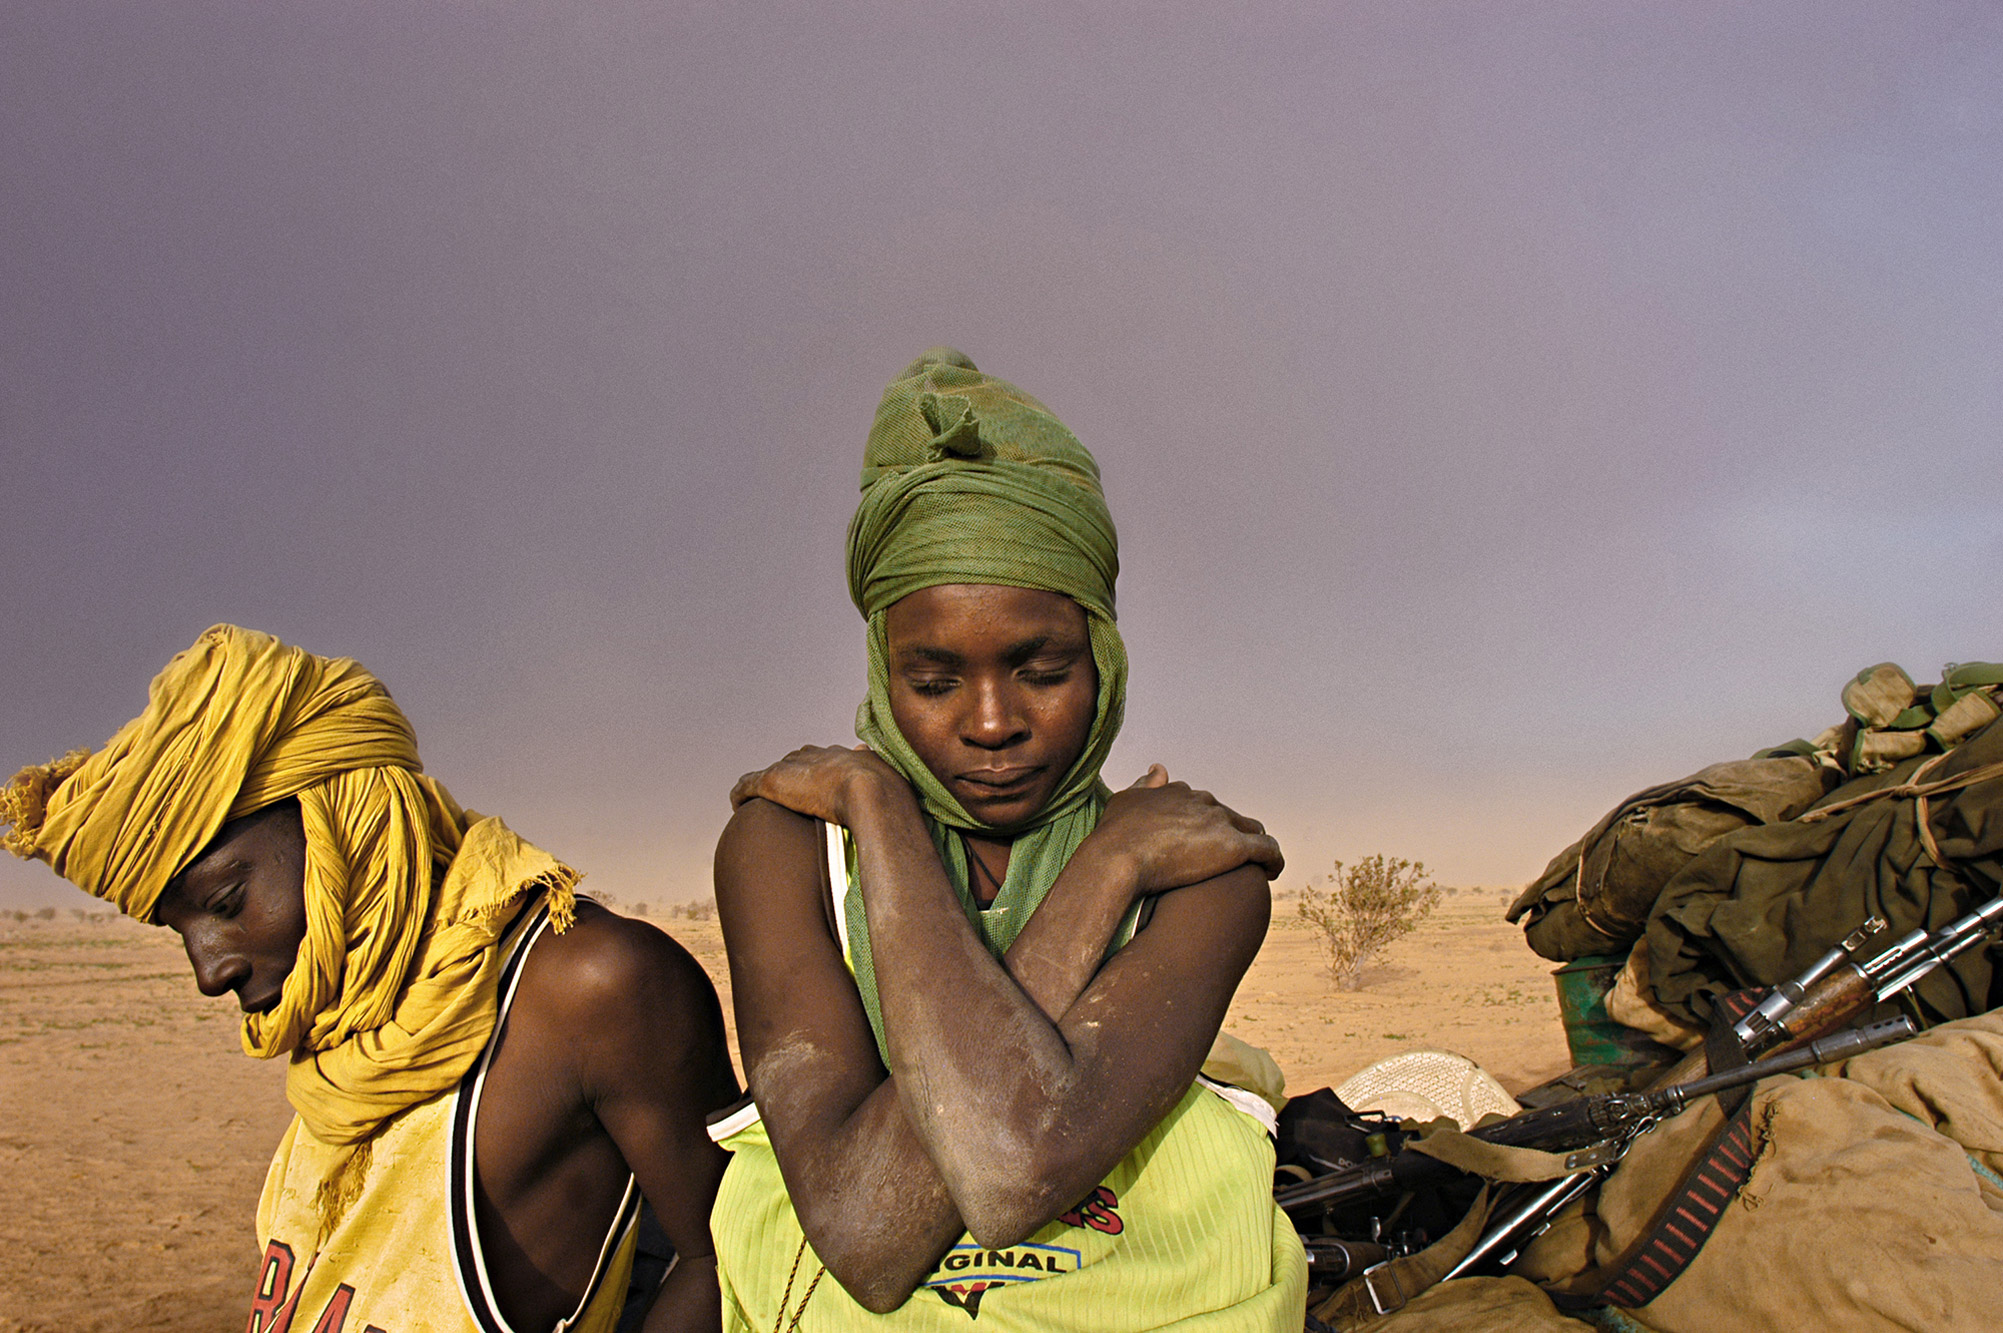 Lynsey Addario I'ts What I Do